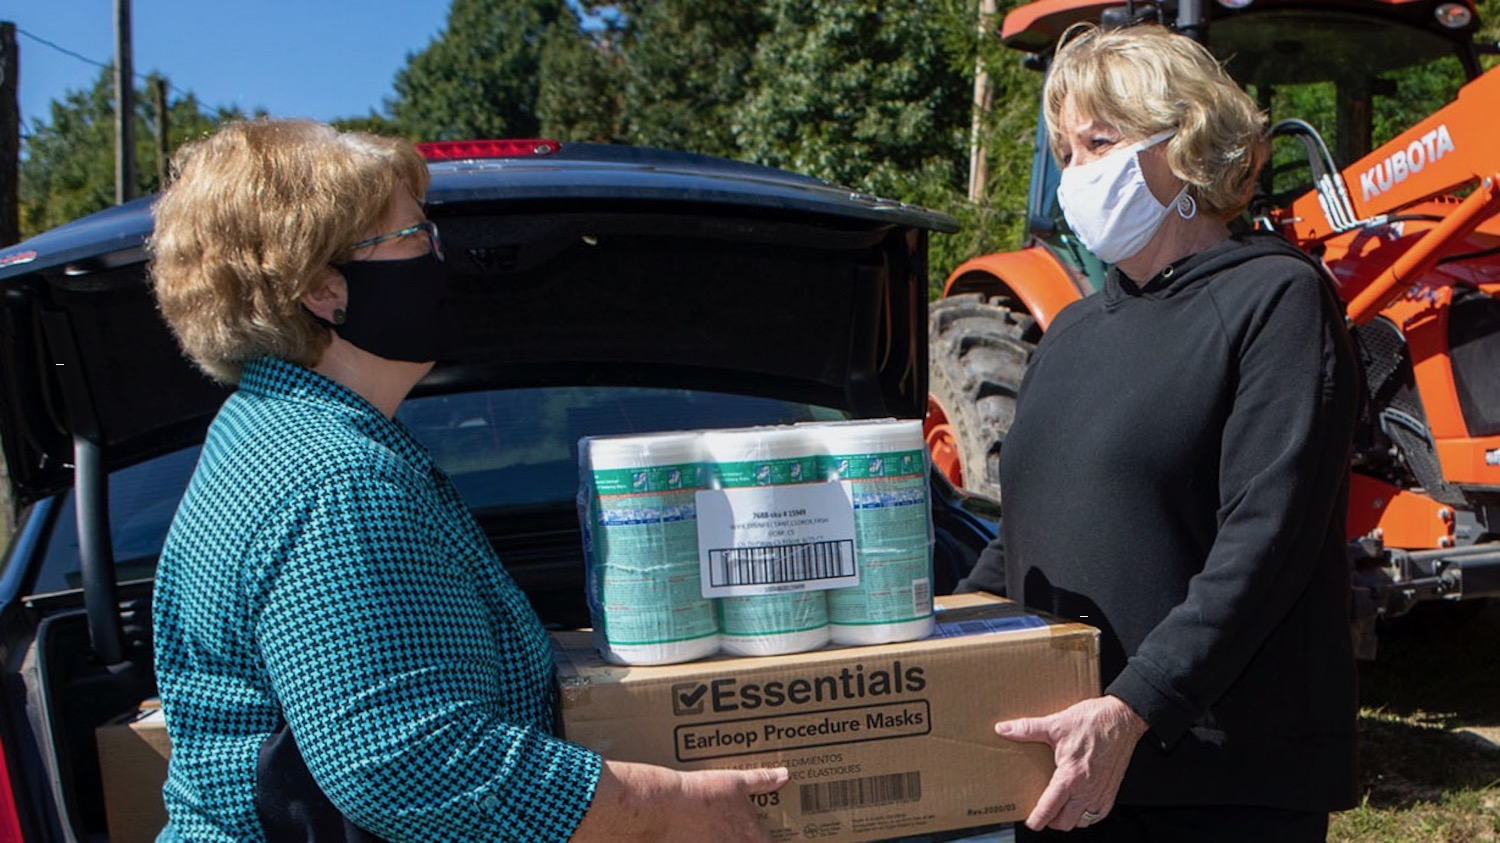 Dr. Robin Tutor Marcom, director of the North Carolina Agromedicine Institute handing protective masks and disinfectant wipes to Tracy Taylor, owner of Stone Mountain Farms in Vilas, N.C. Photos by Marie Freeman, Appalachian State University